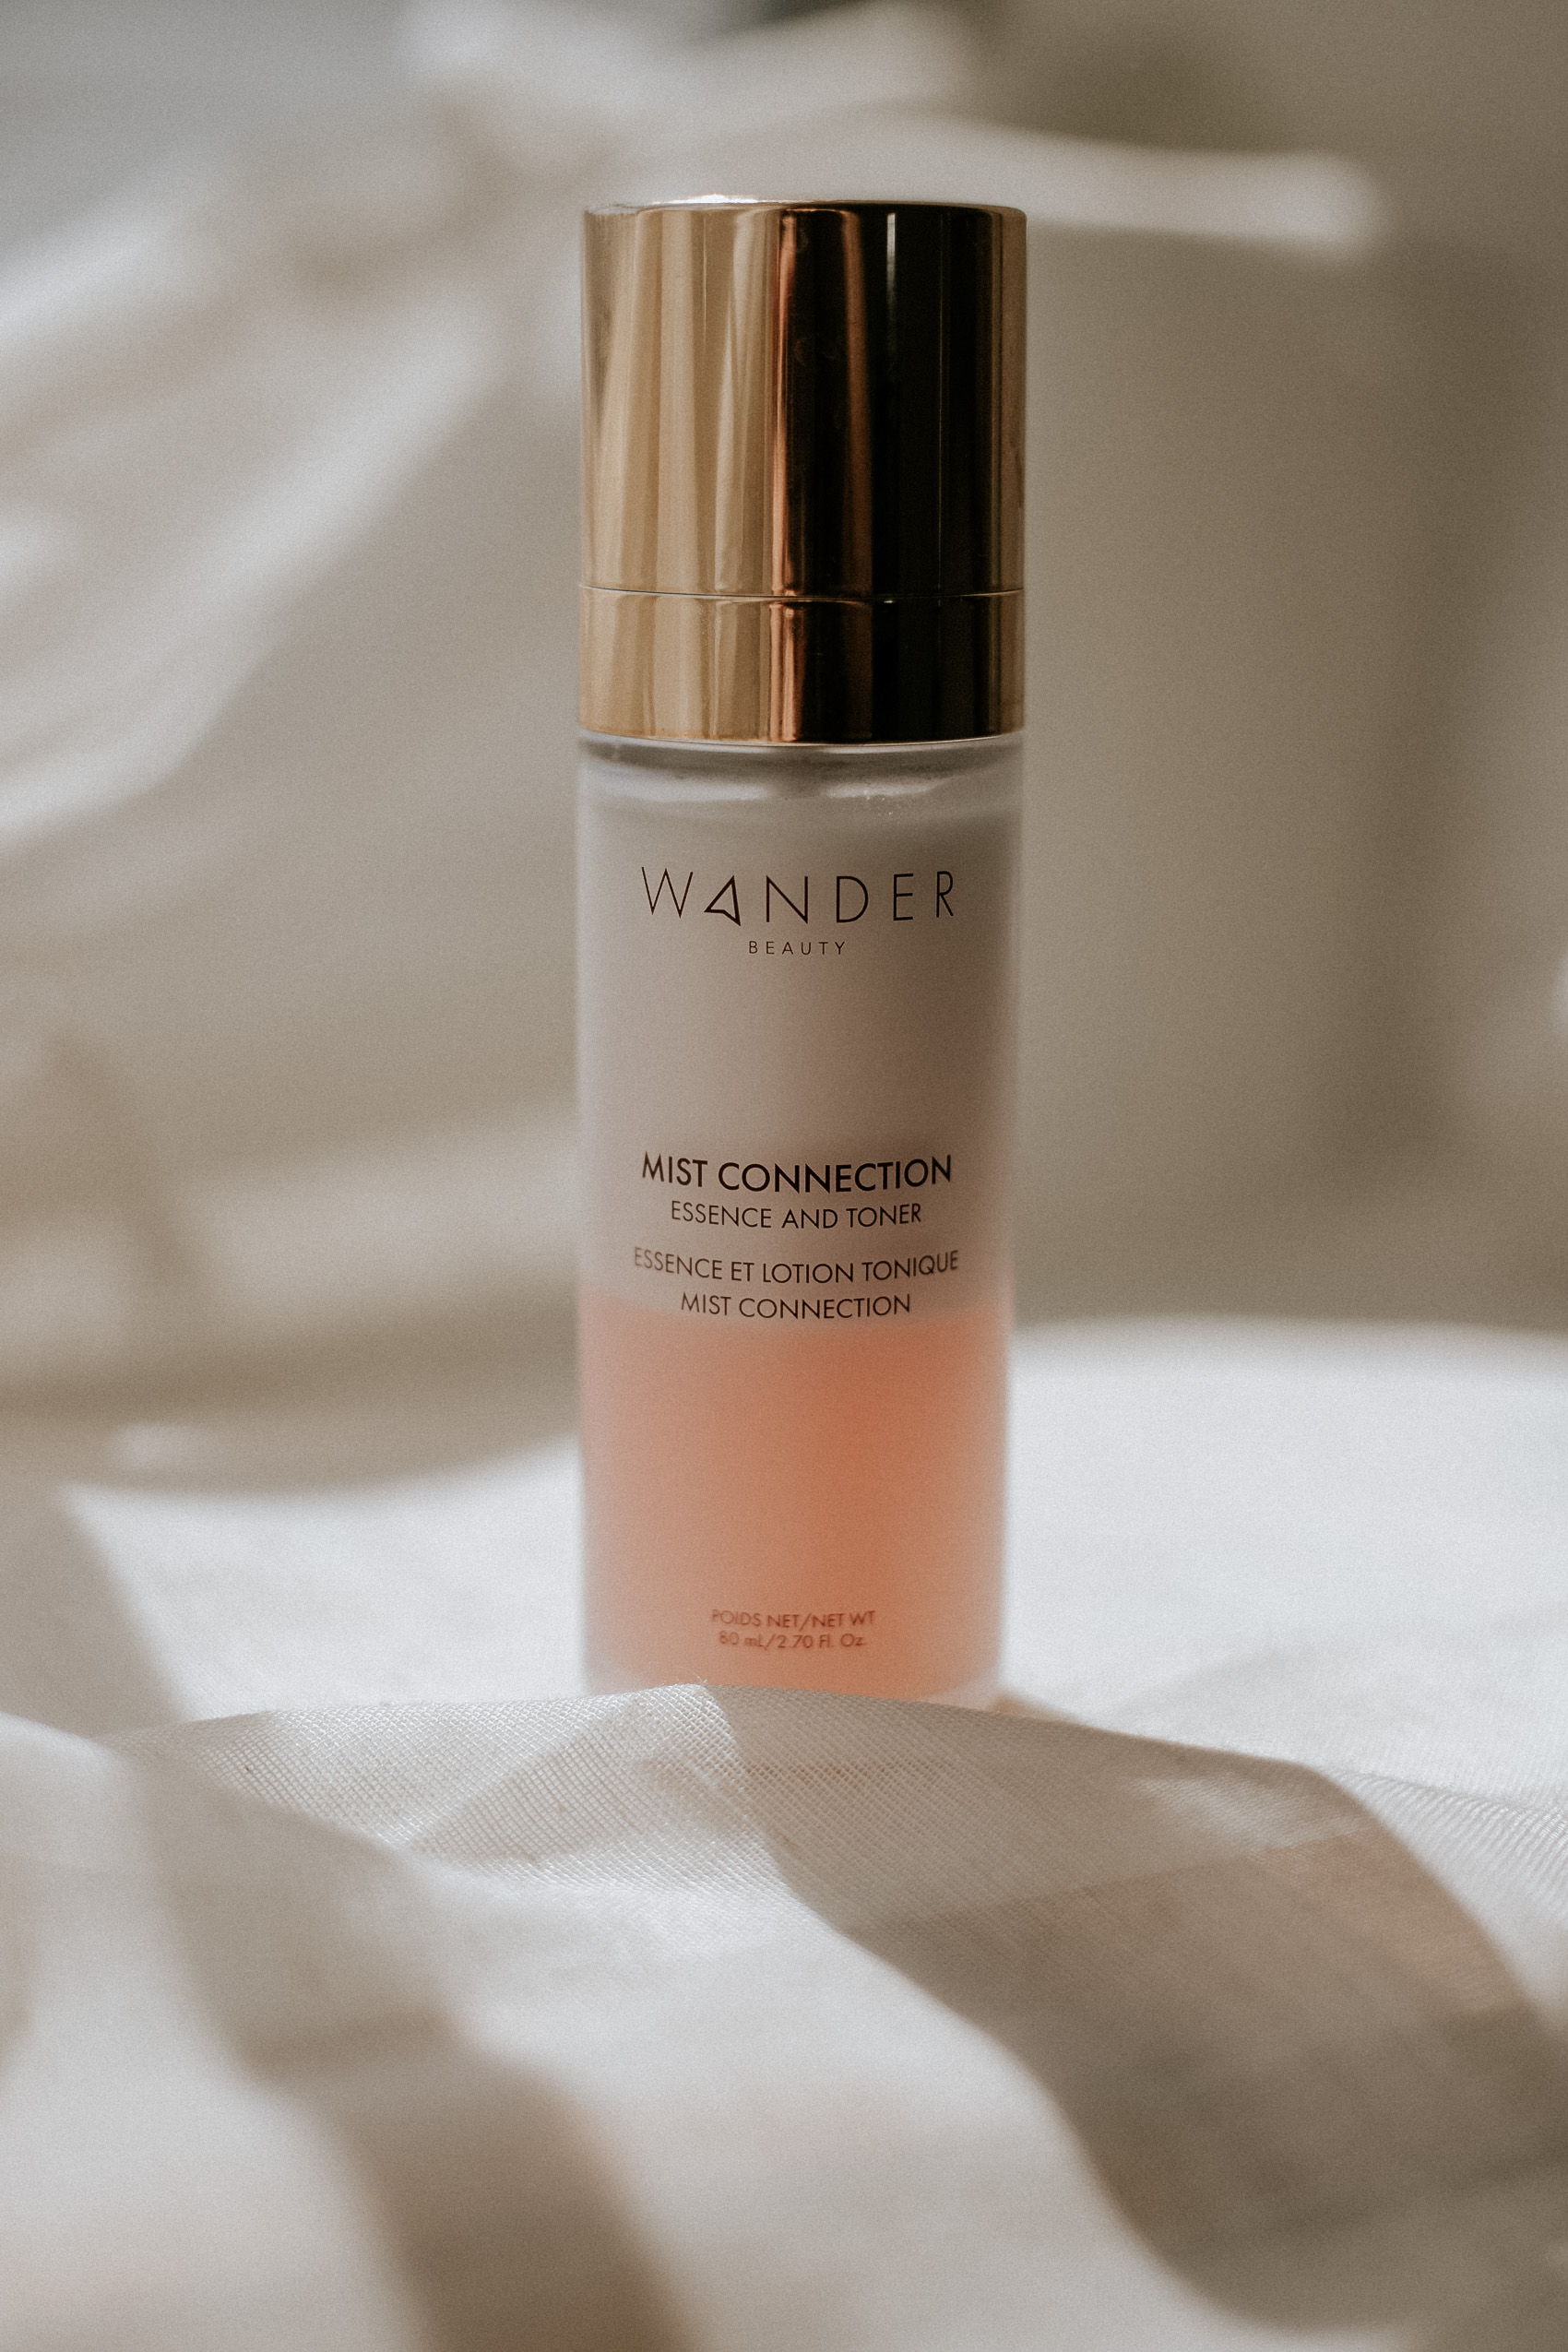 Wander Beauty Facial Essence and Toner product reviews